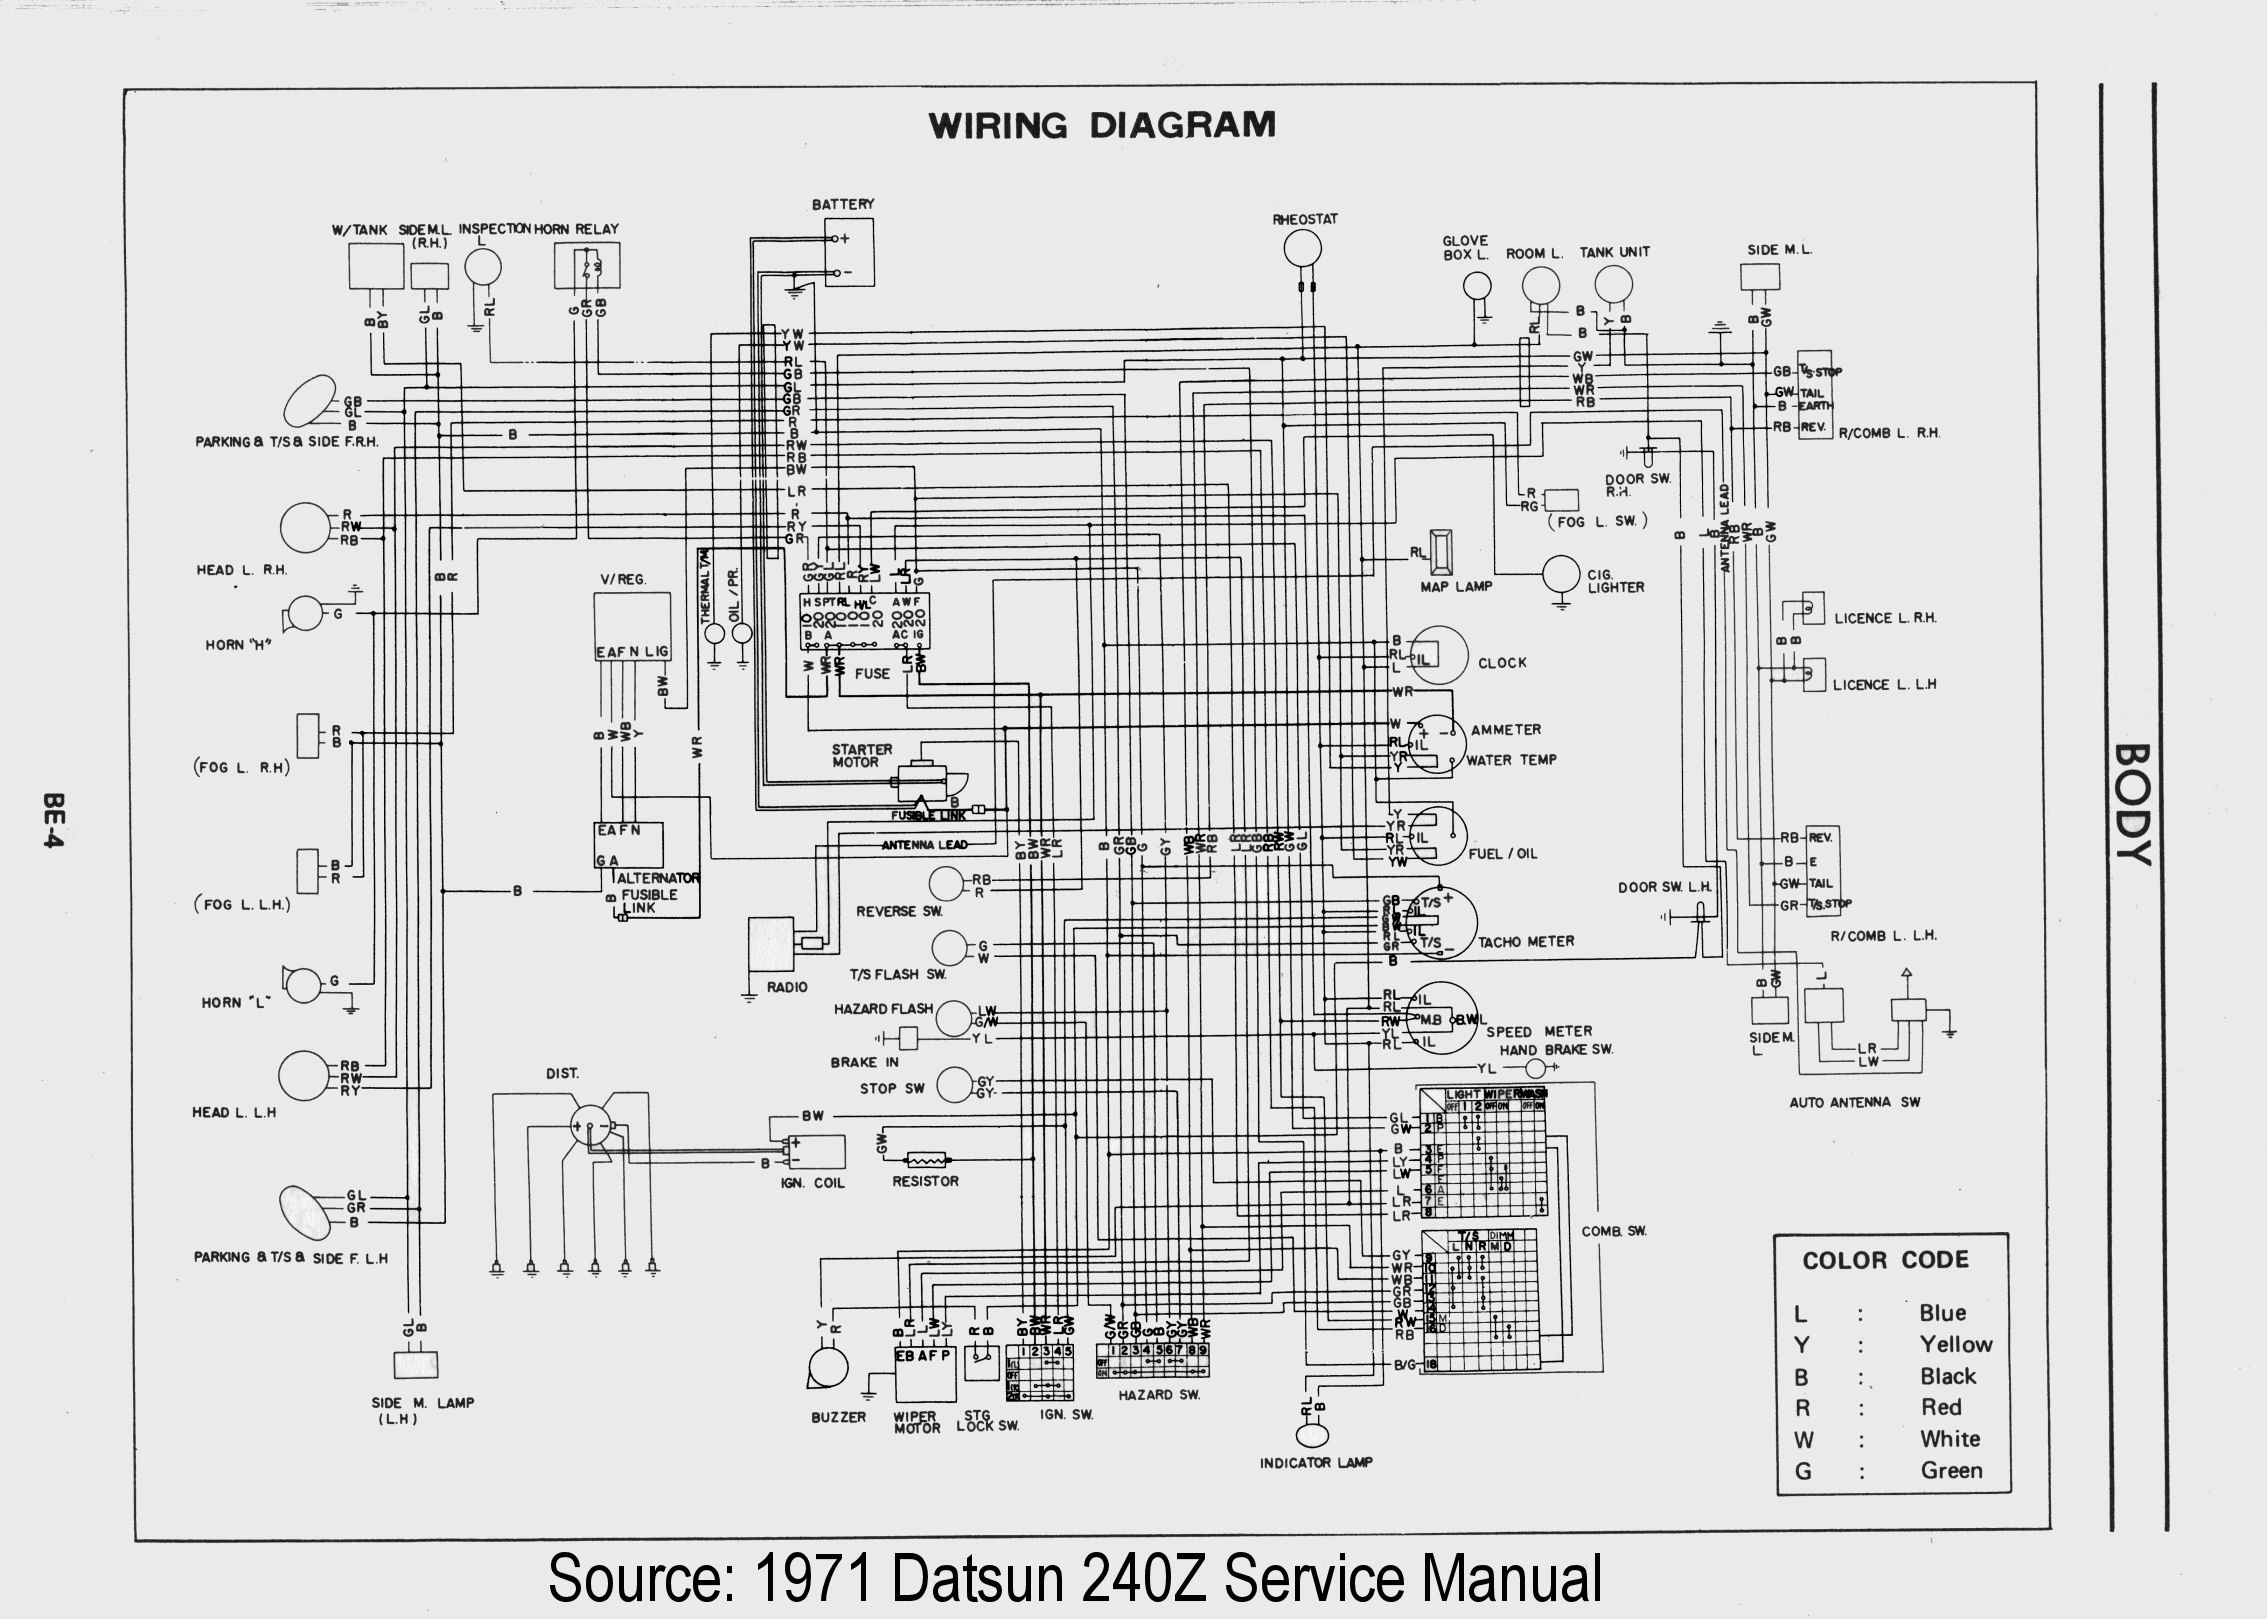 Wiring Diagram HiRes 2 generic wiring troubleshooting checklist woodworkerb Custom Automotive Wiring Harness Kits at pacquiaovsvargaslive.co